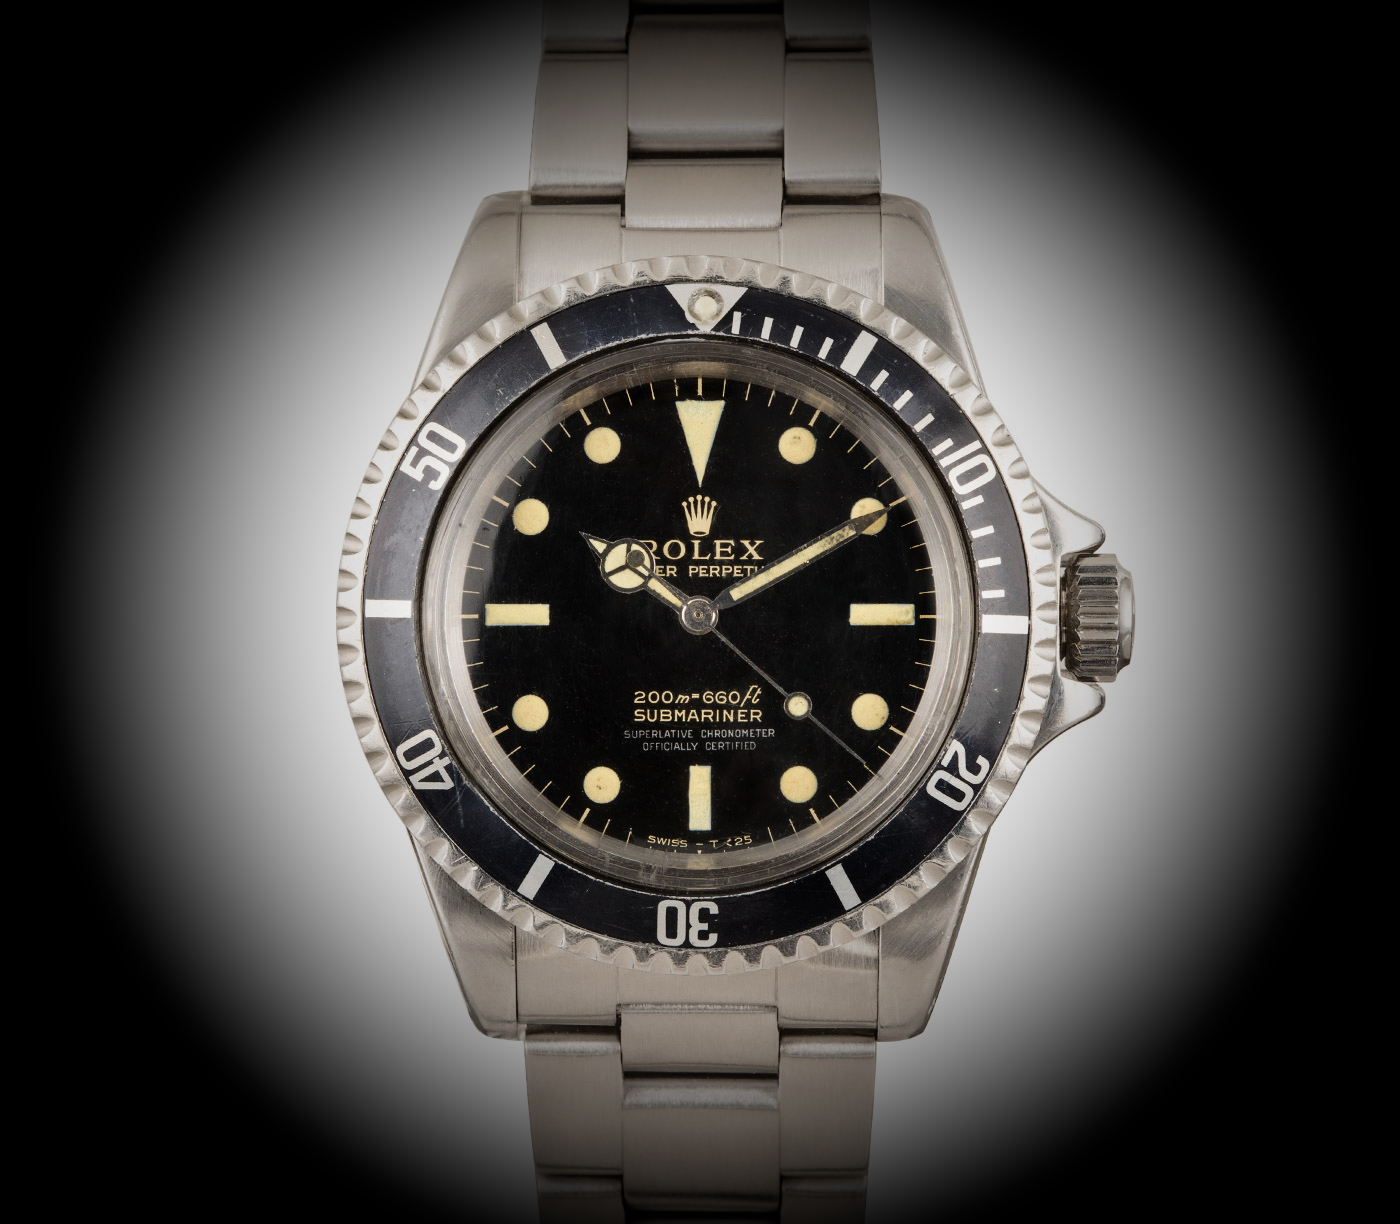 Iconic_watches_of_Hollywood_Rolex_submariner_steve_mcqueen_ref._5512-Europa_star_watch_magazine_2020